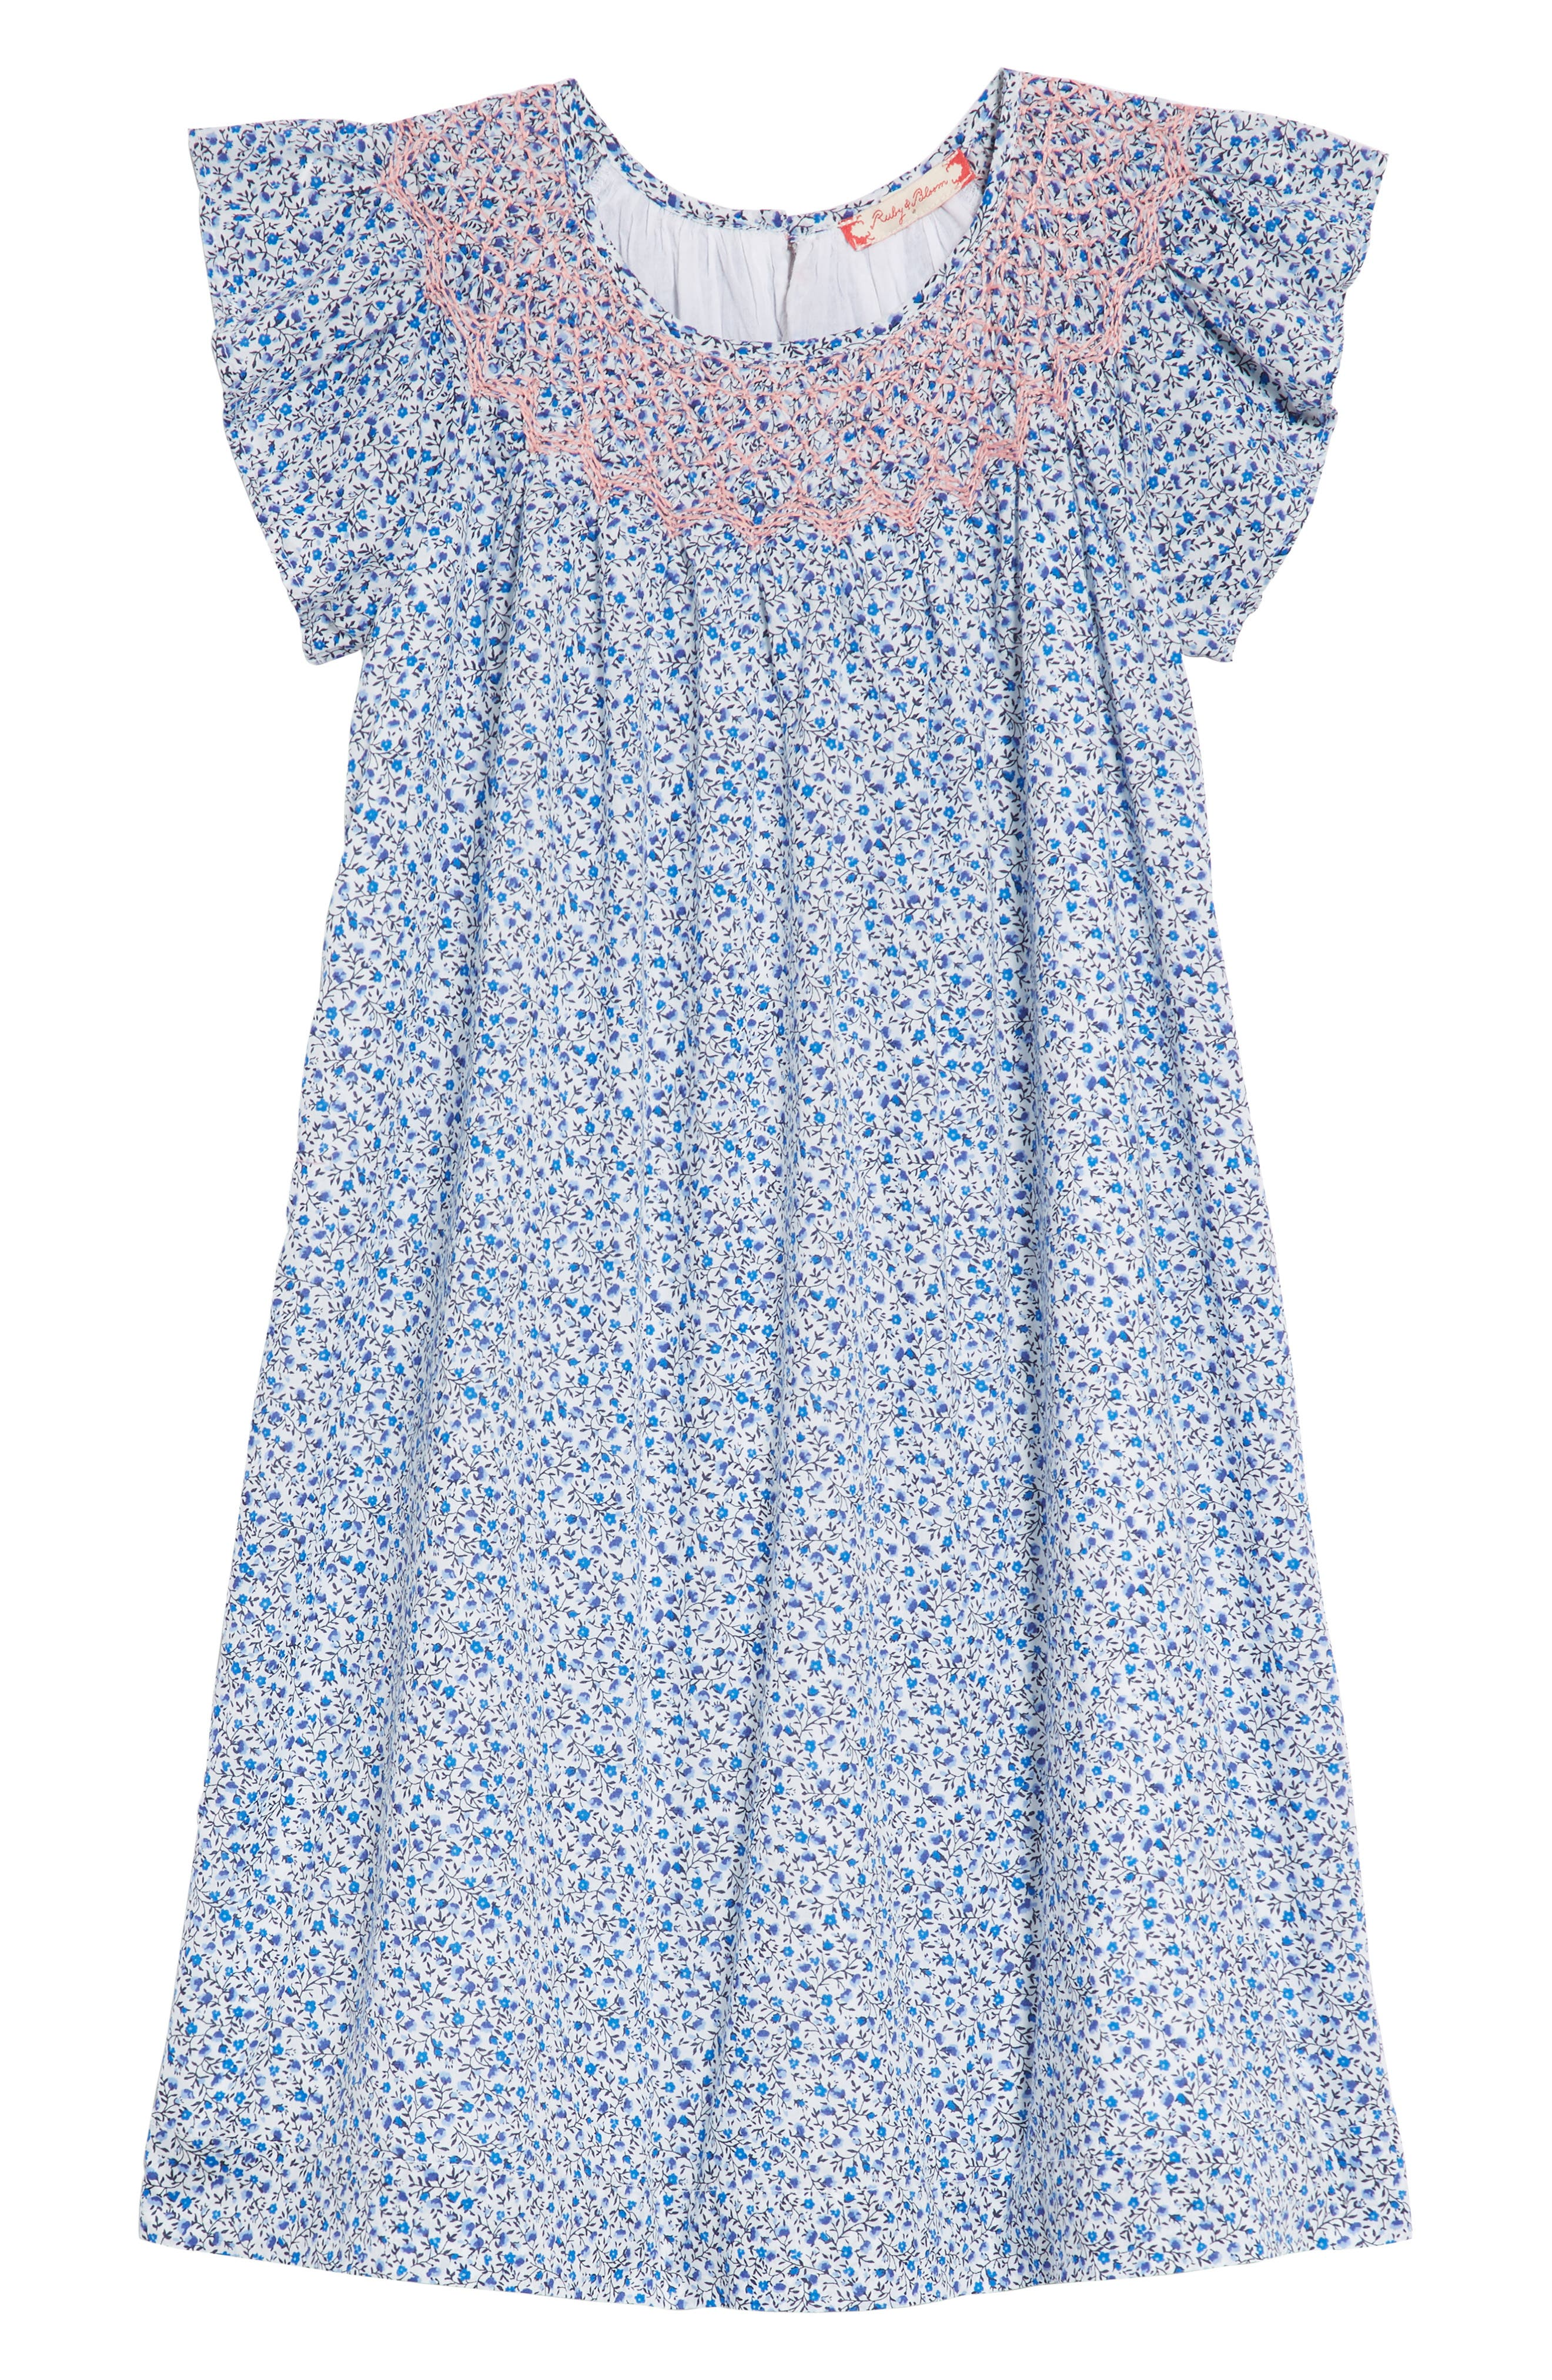 RUBY & BLOOM,                             Smocked Ditzy Dress,                             Main thumbnail 1, color,                             100